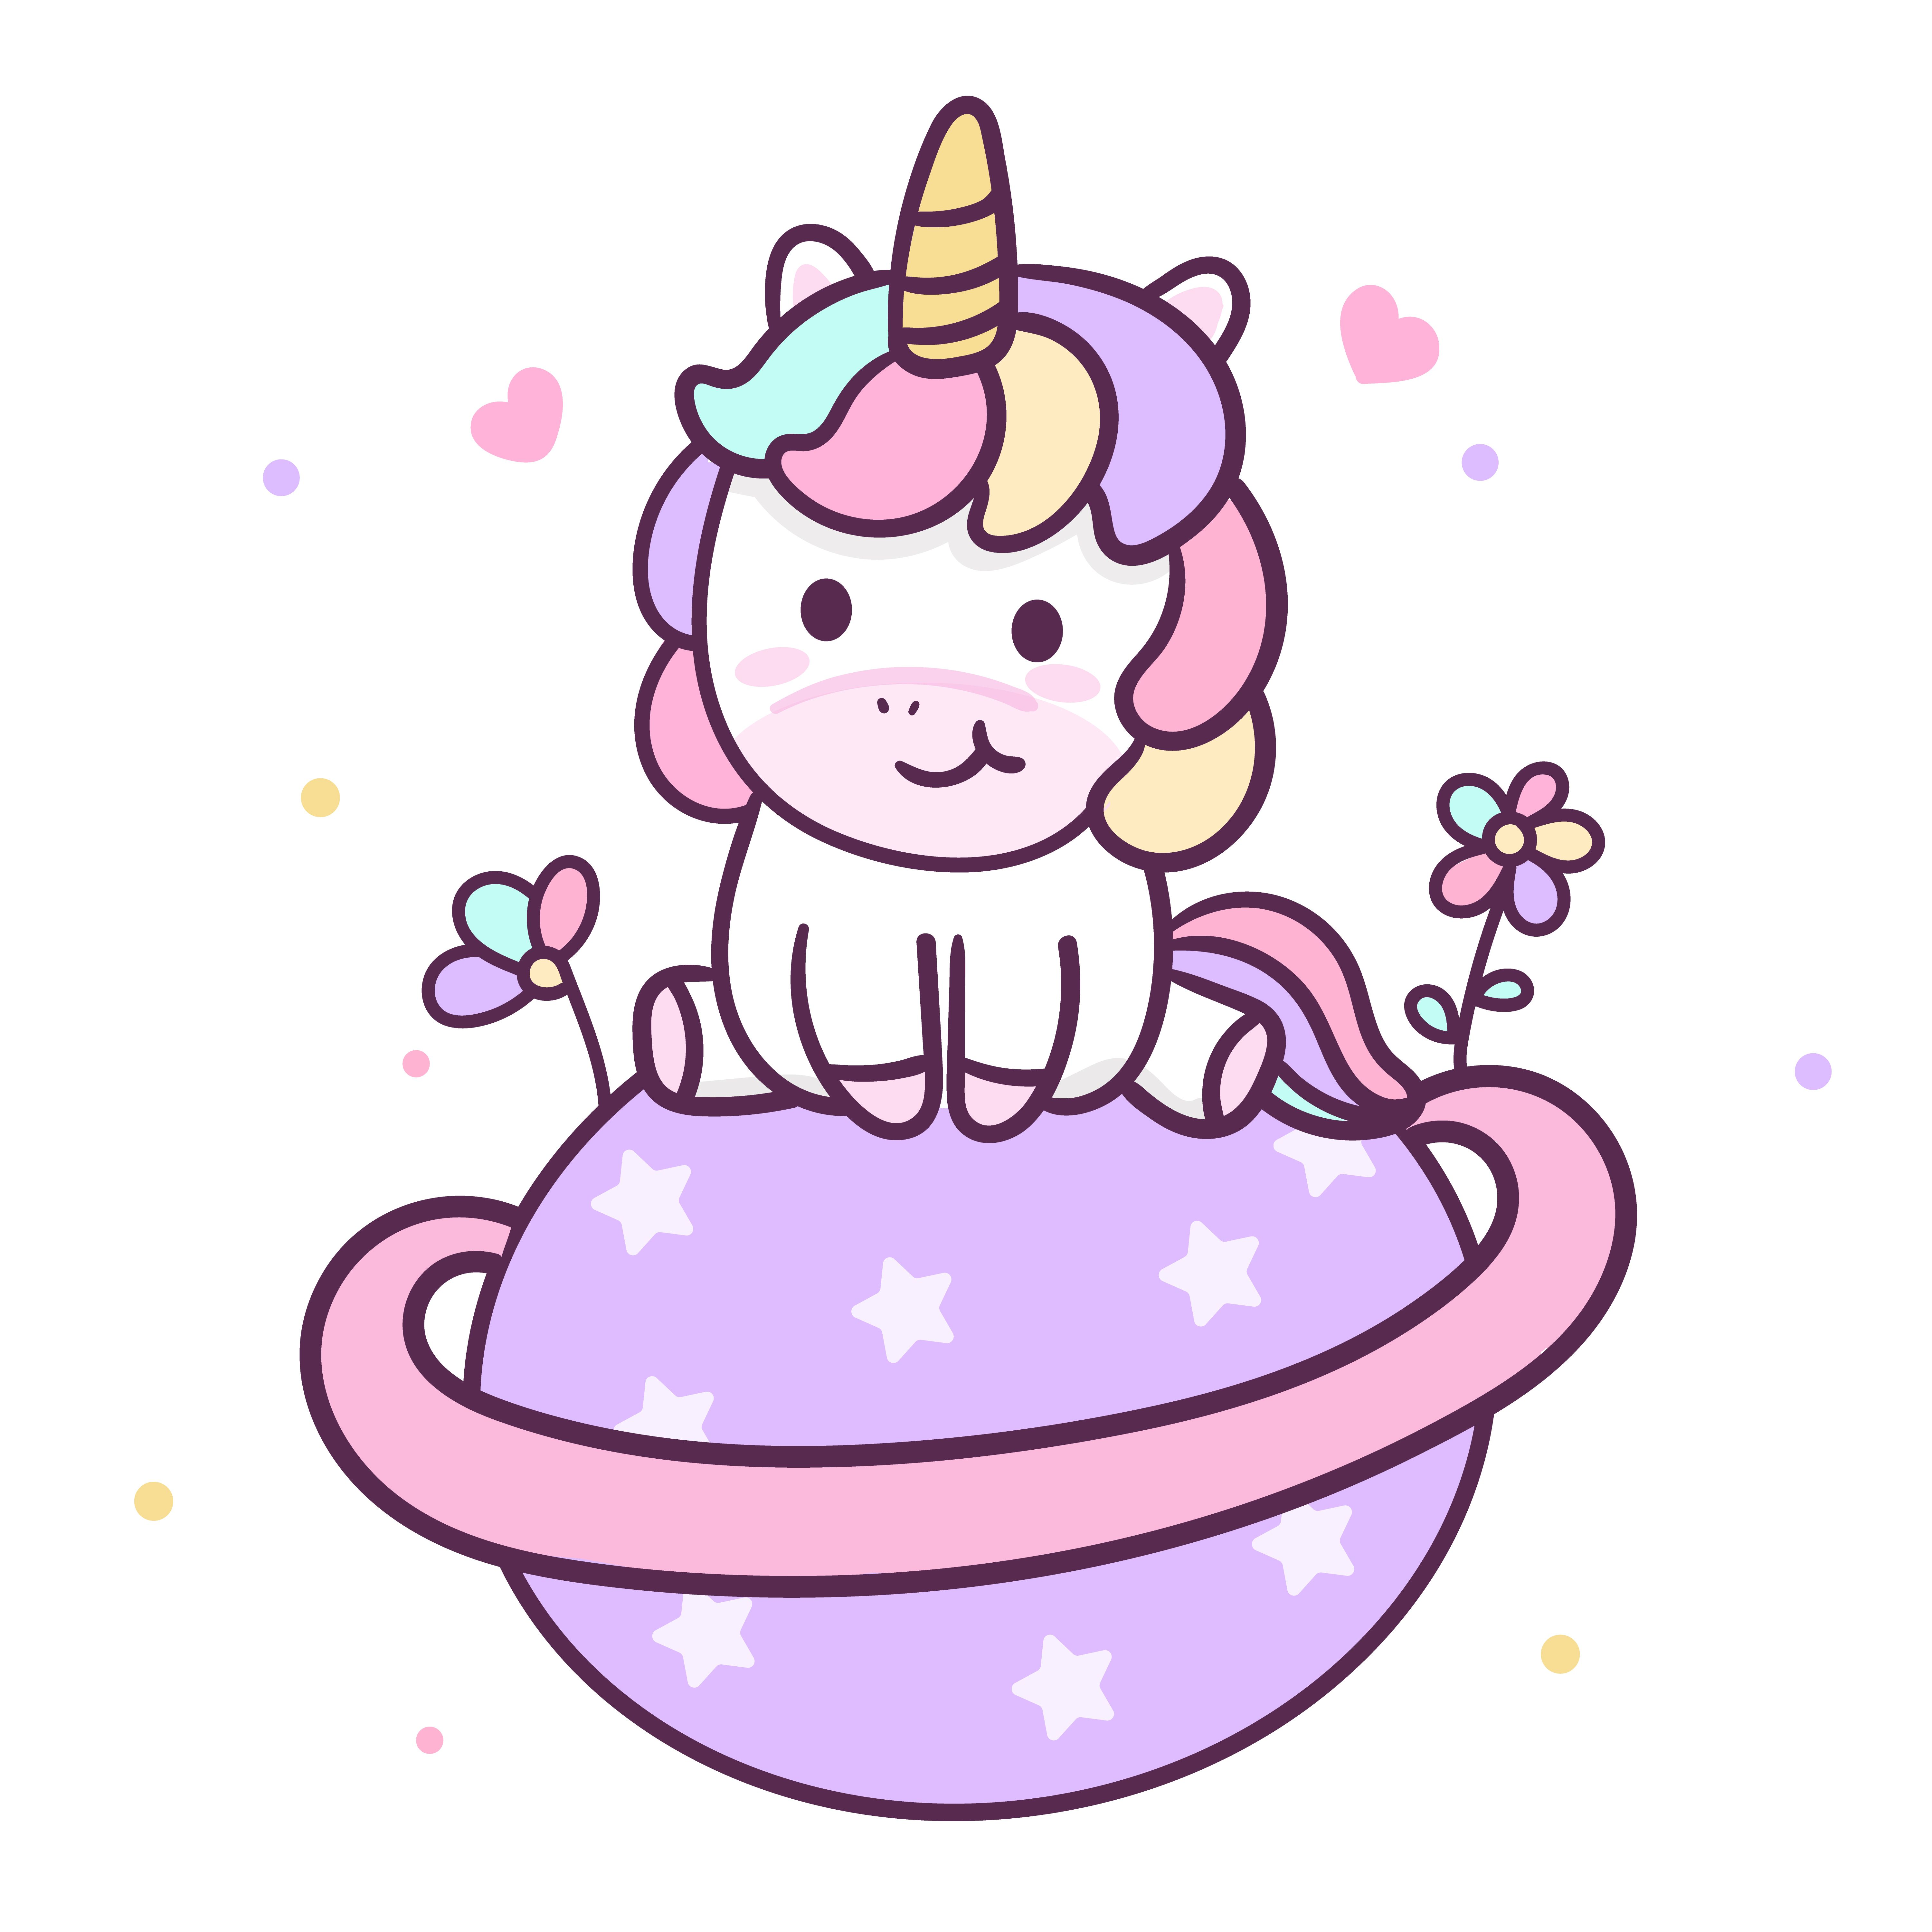 Cute Unicorn Vector Sweet Dream Cartoon With Pastel Color Little